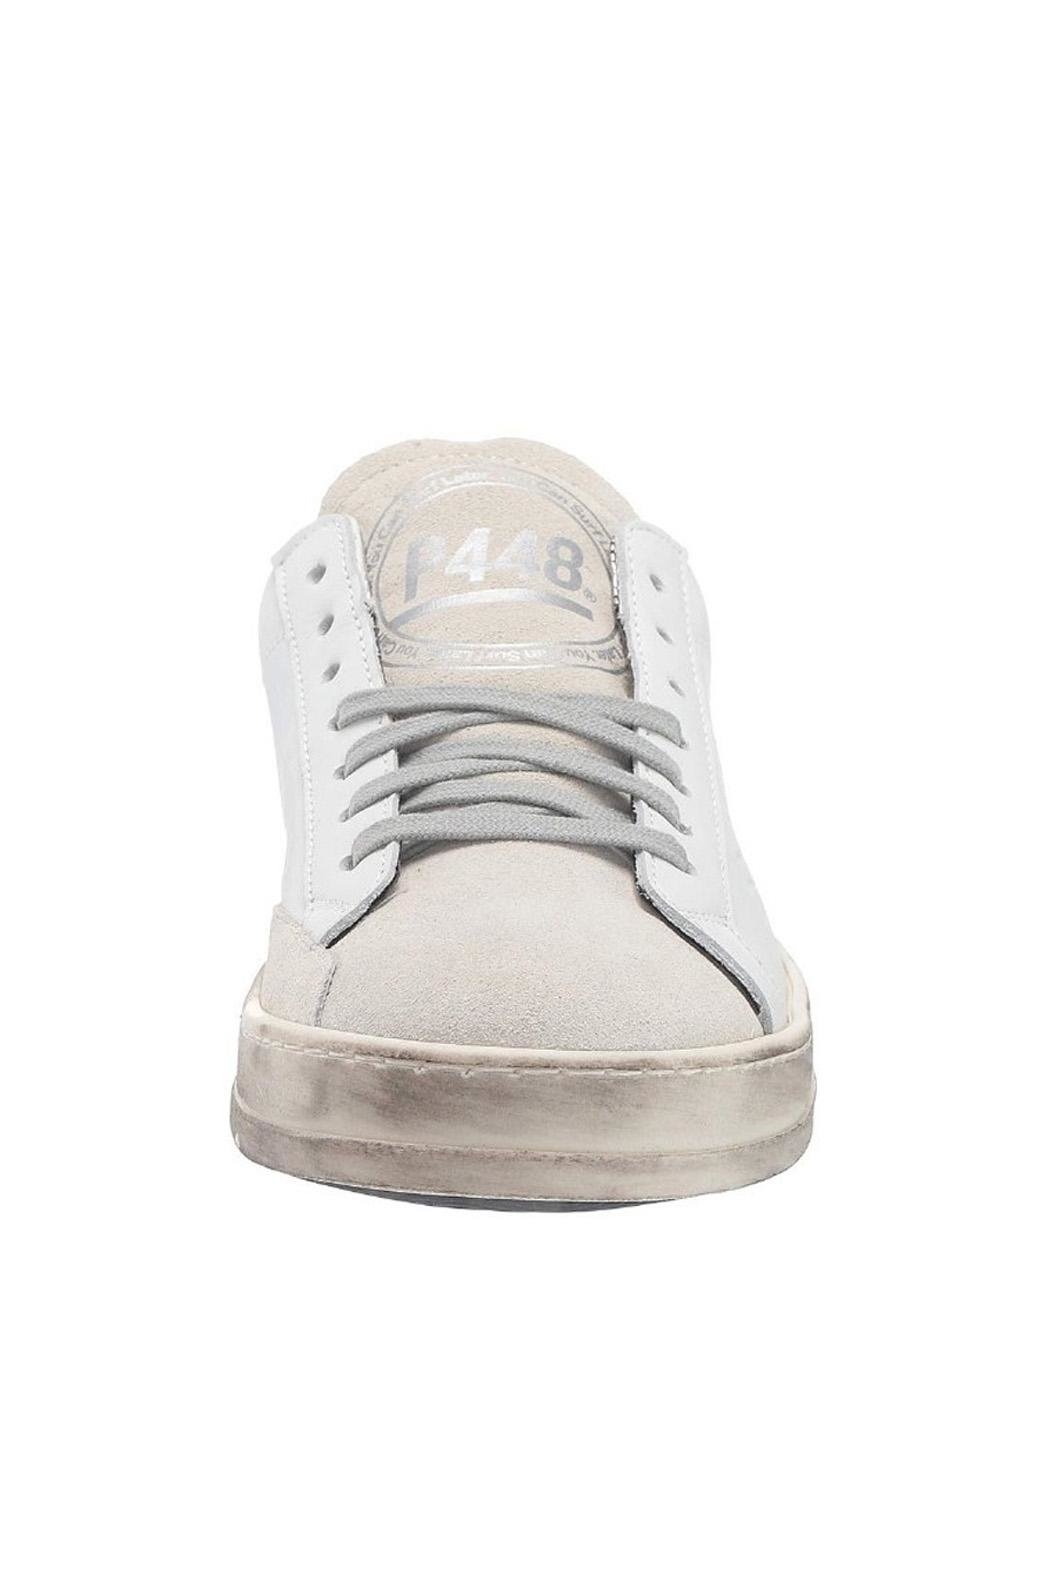 P448 White Leopard Sneaker - Back Cropped Image